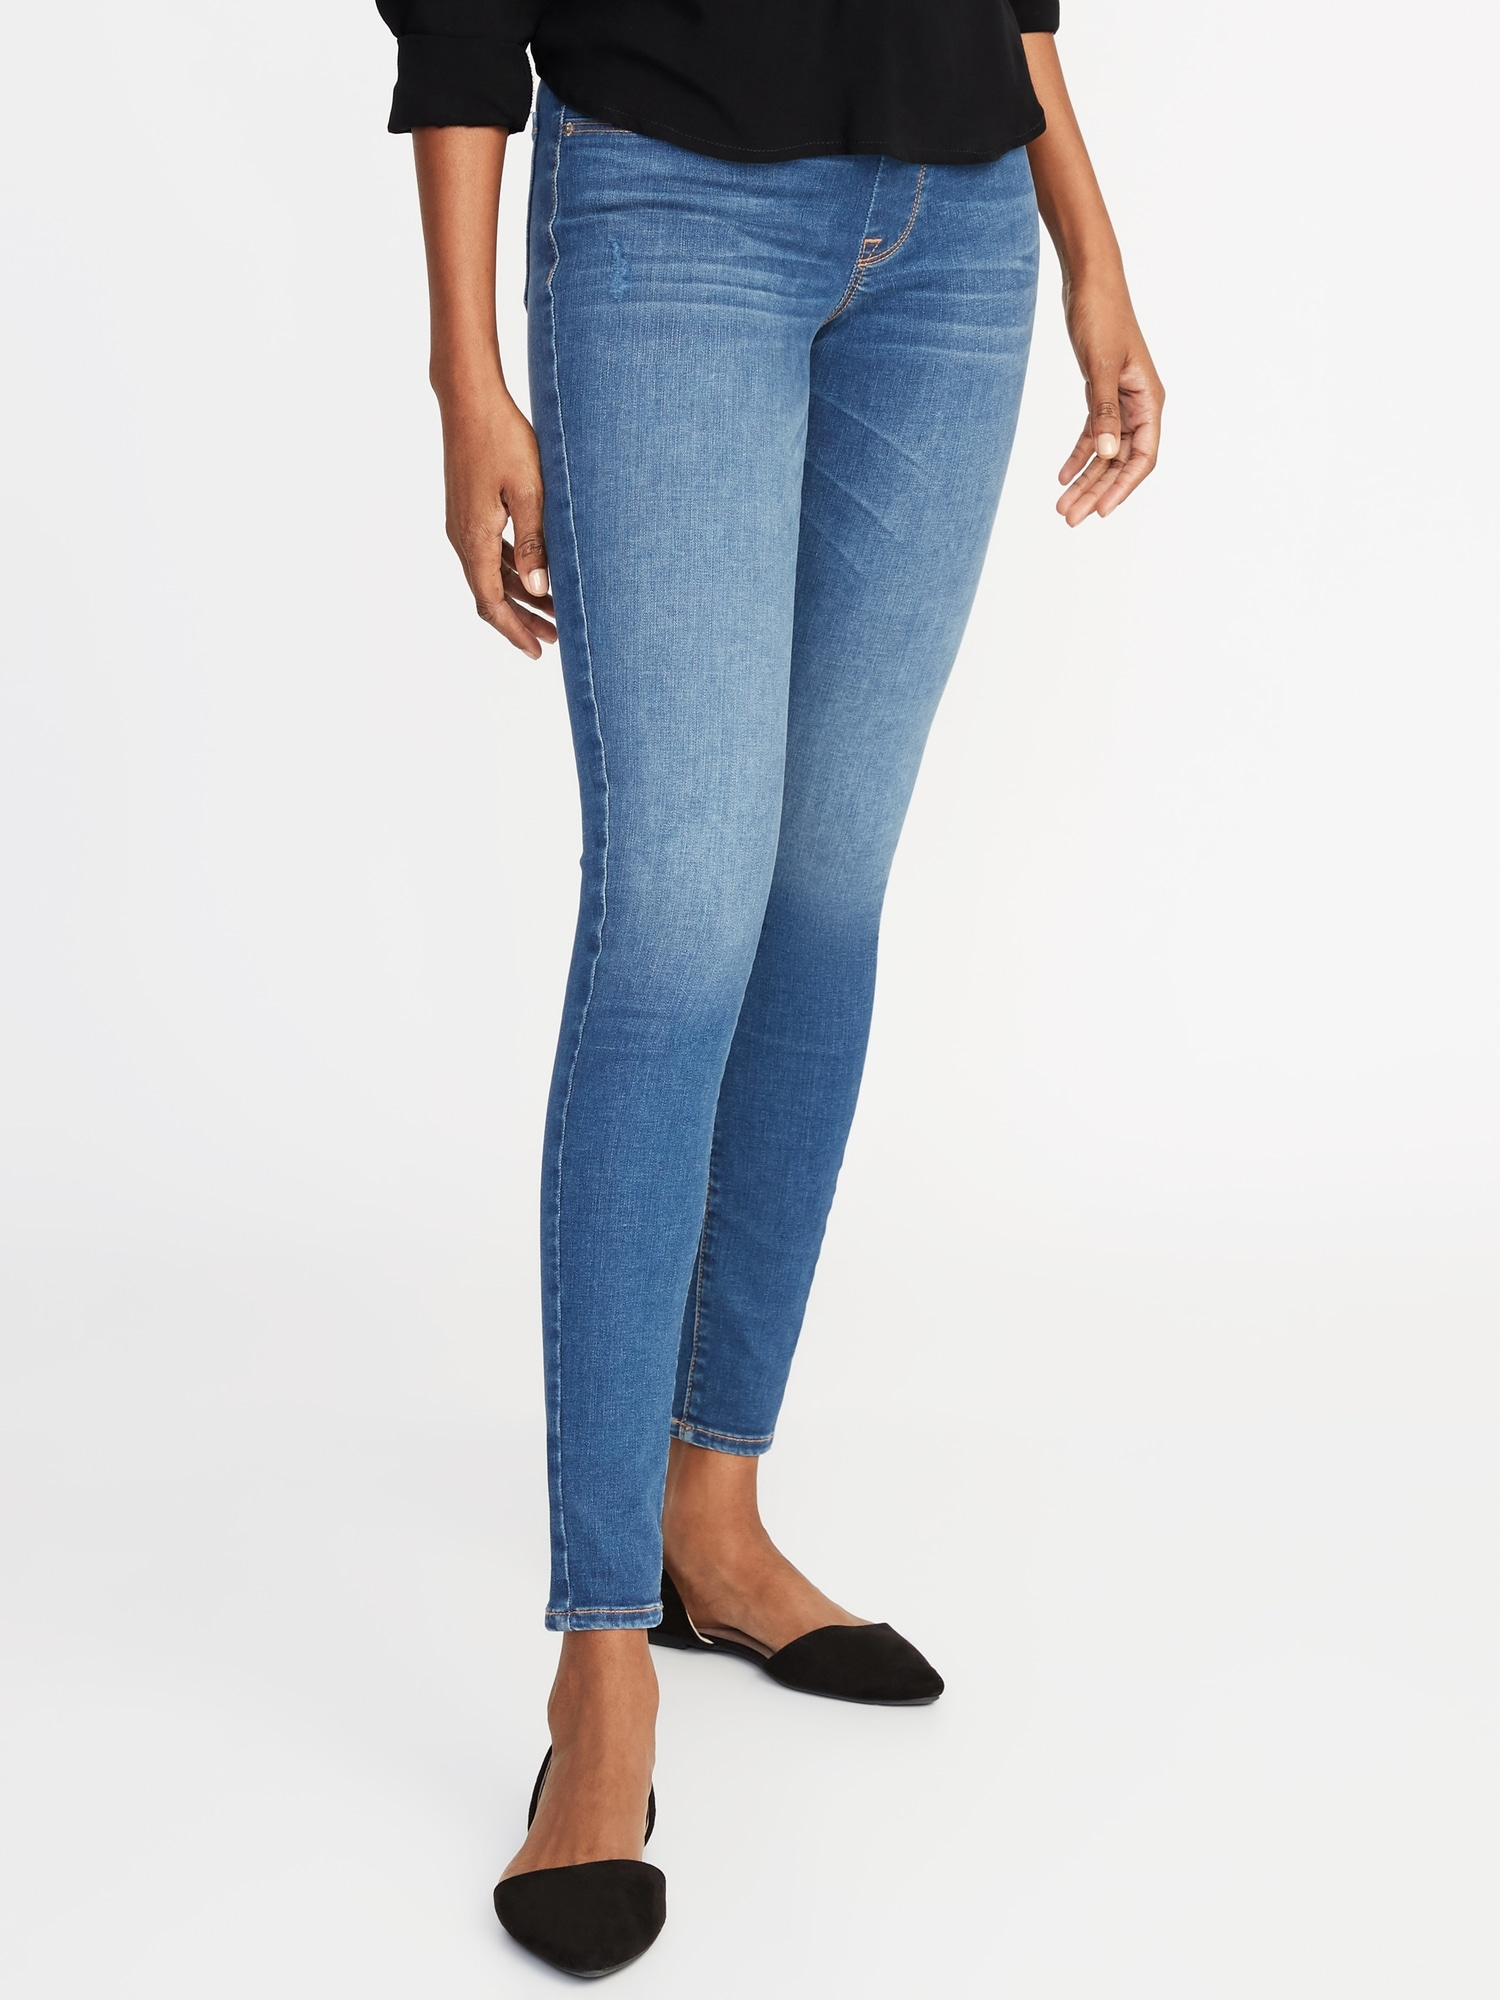 36acc24d88f19 Mid-Rise Built-In Sculpt Rockstar Jeggings for Women | Old Navy